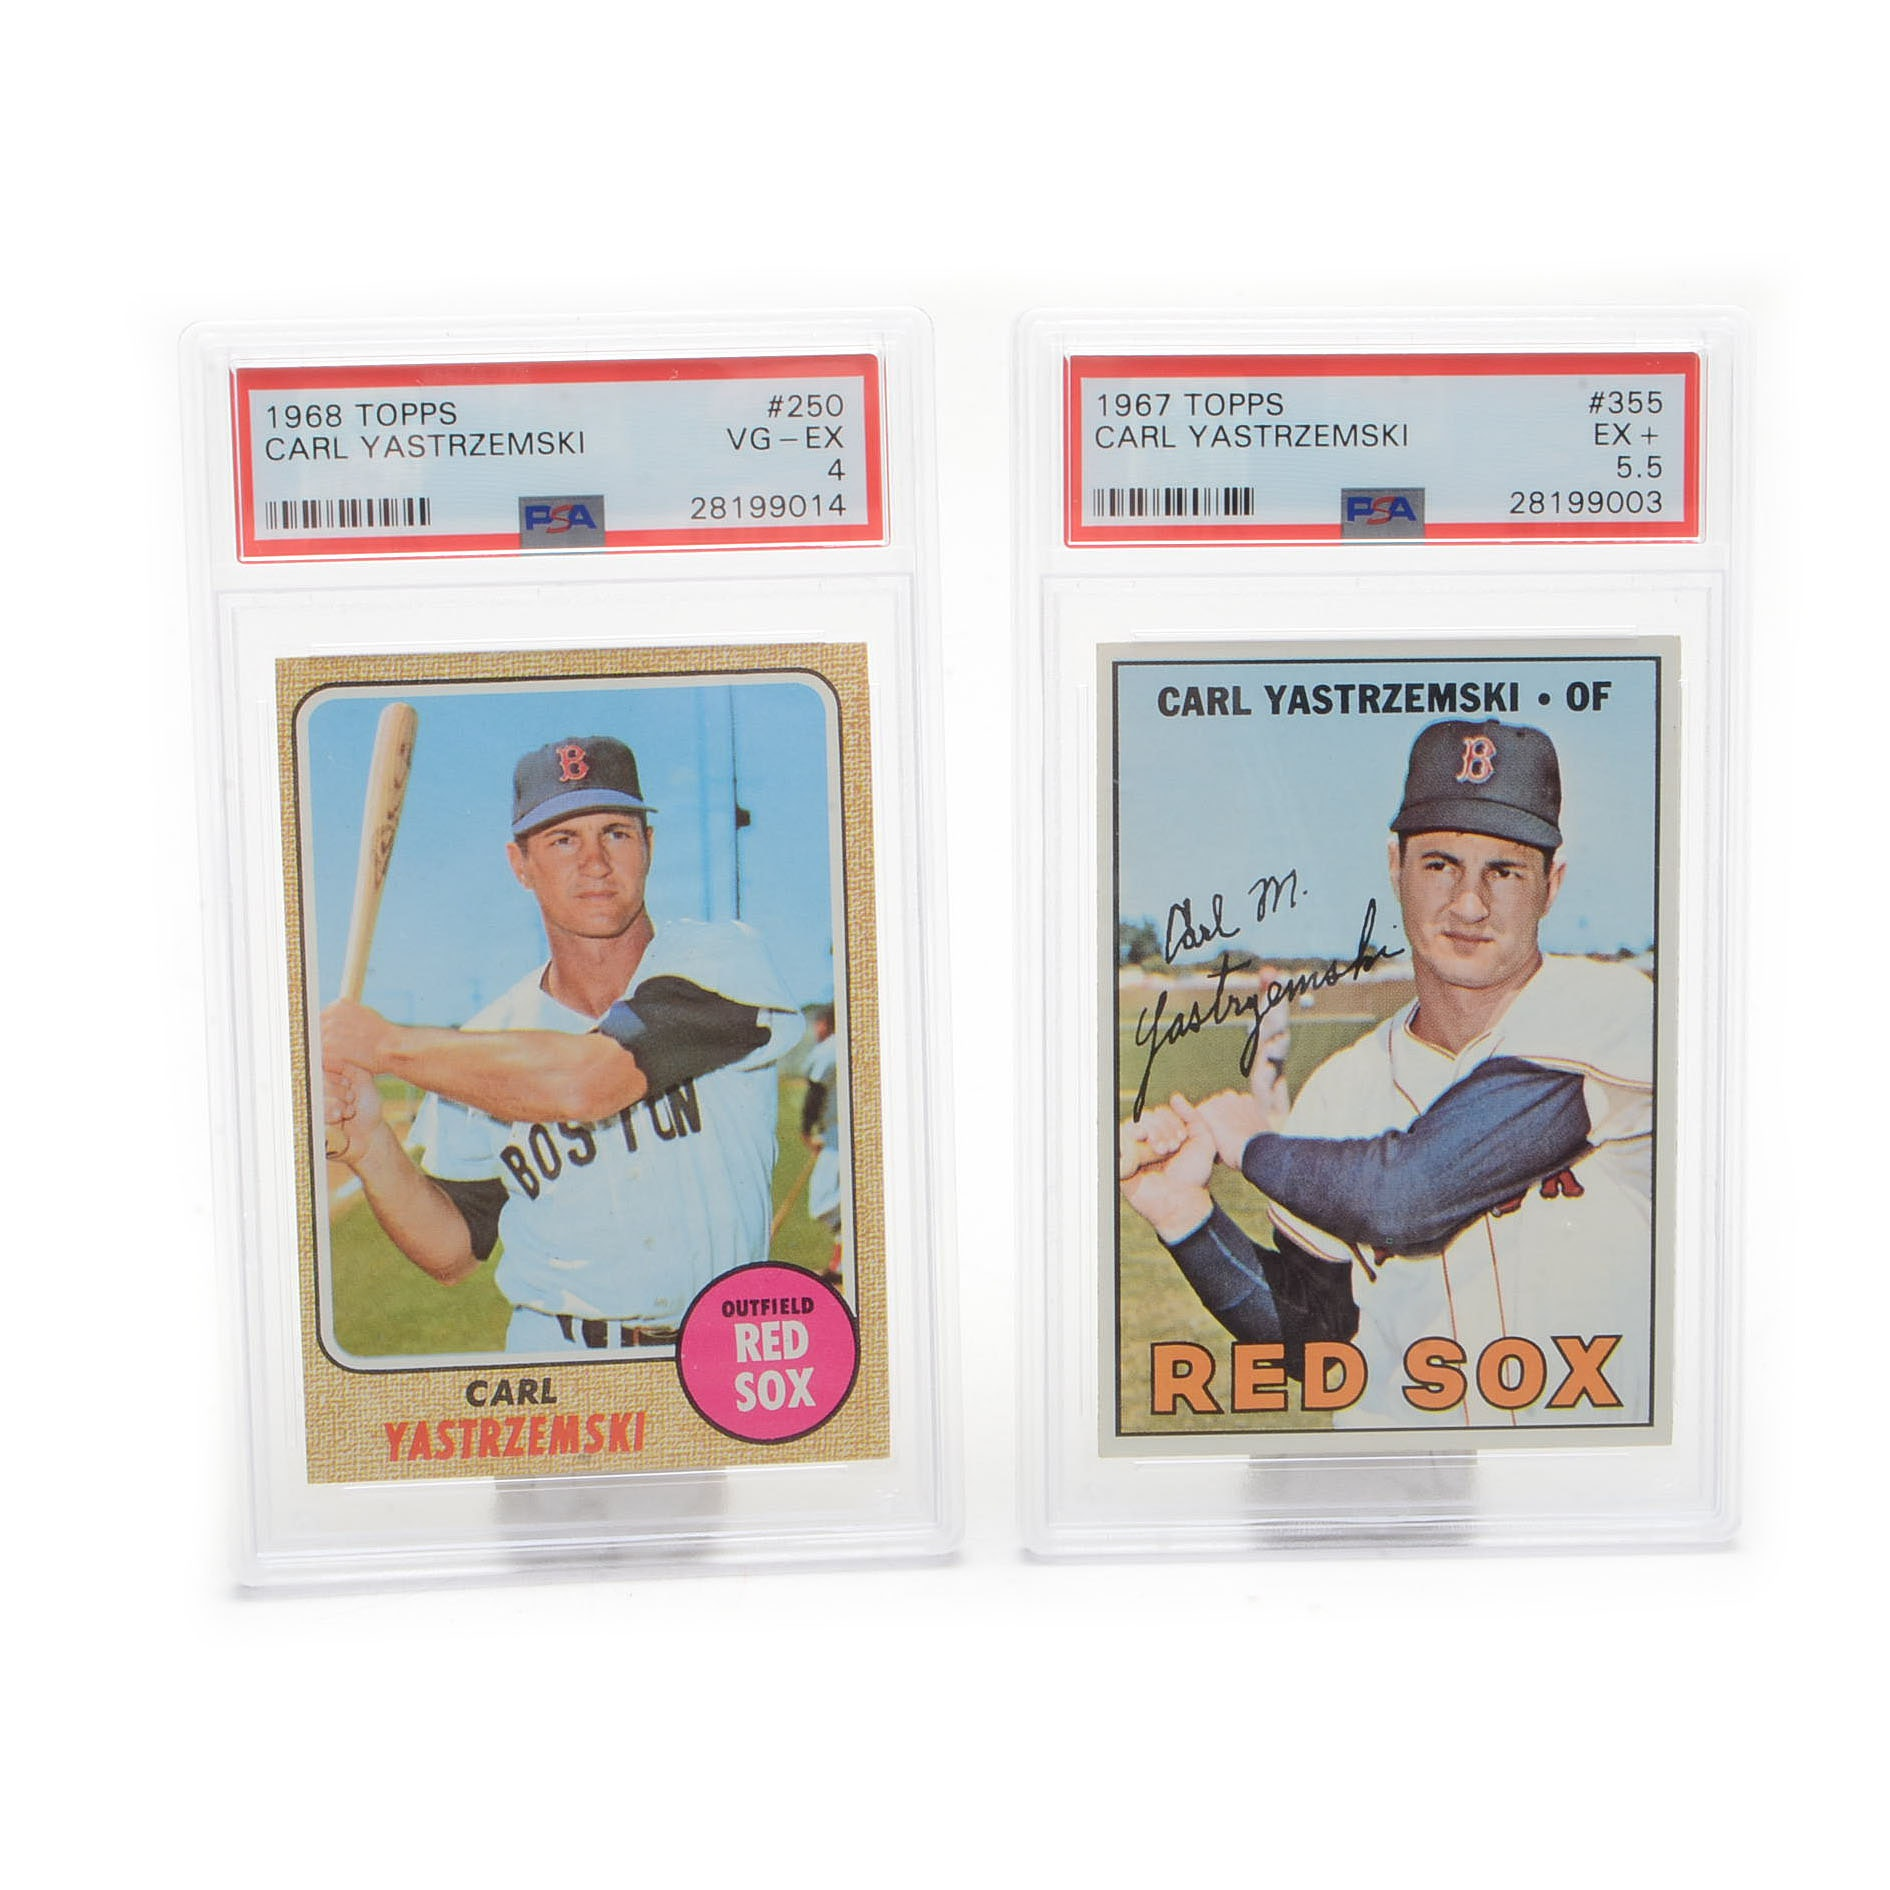 1967 and 1968 Carl Yastrzemski PSA Graded Baseball Cards